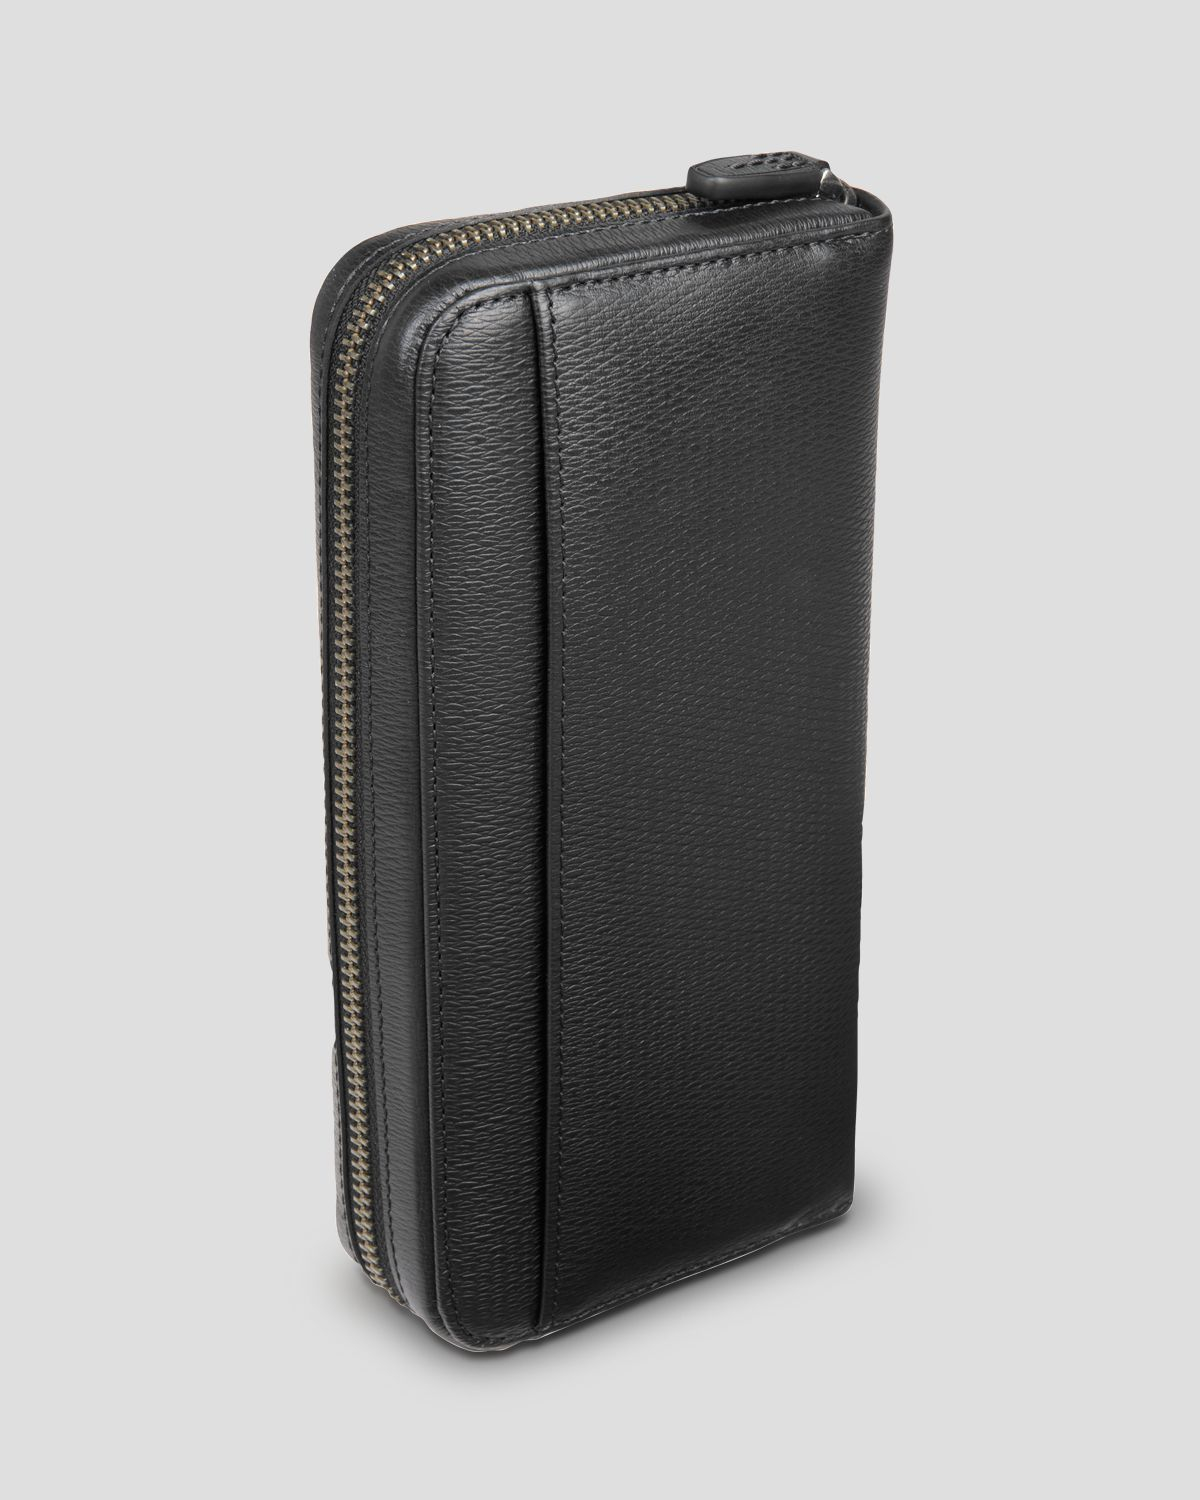 Lyst - Tumi Monaco Large Zip Around Travel Wallet in Black for Men